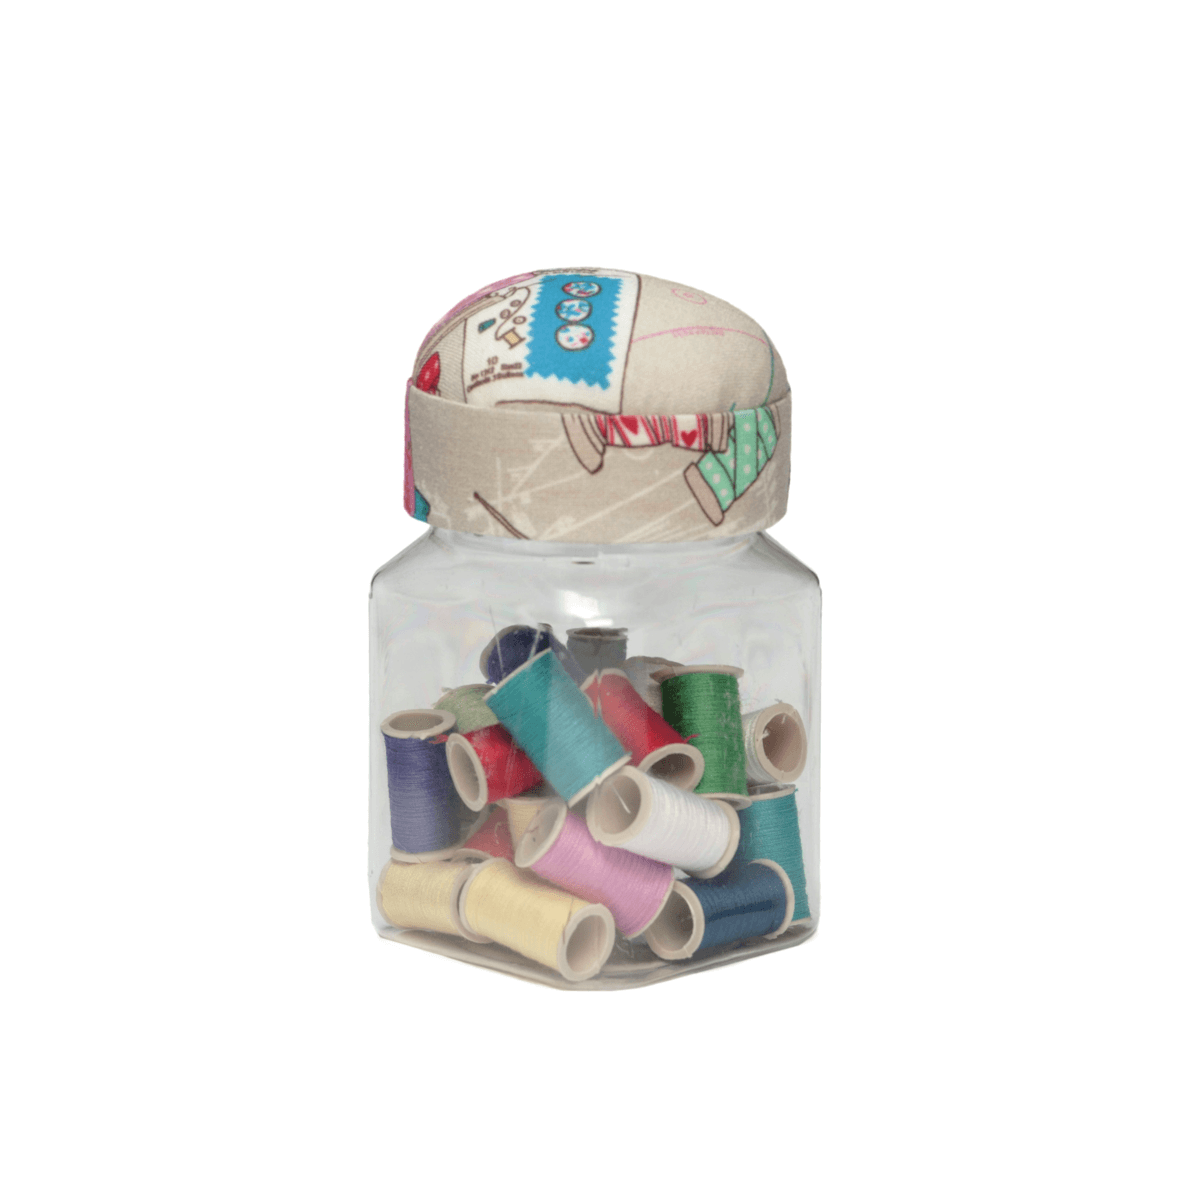 Groves Notions Pin Cushion Jar Lid Threads Sewing Storage Knitting Craft